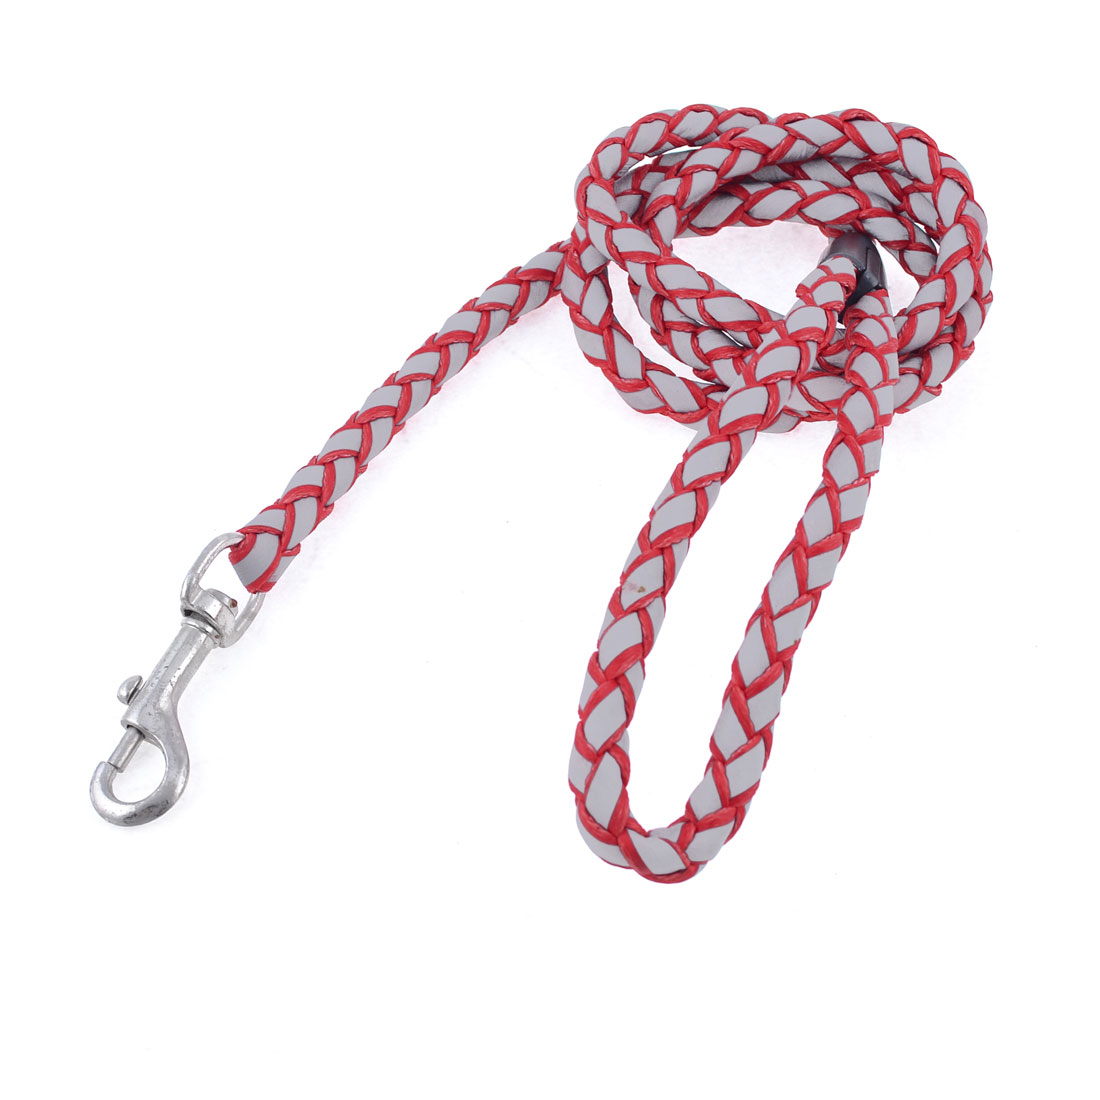 "Red Gray Textured Rope Reflective Pet Dog Pulling Traction Leash 50"" Length"